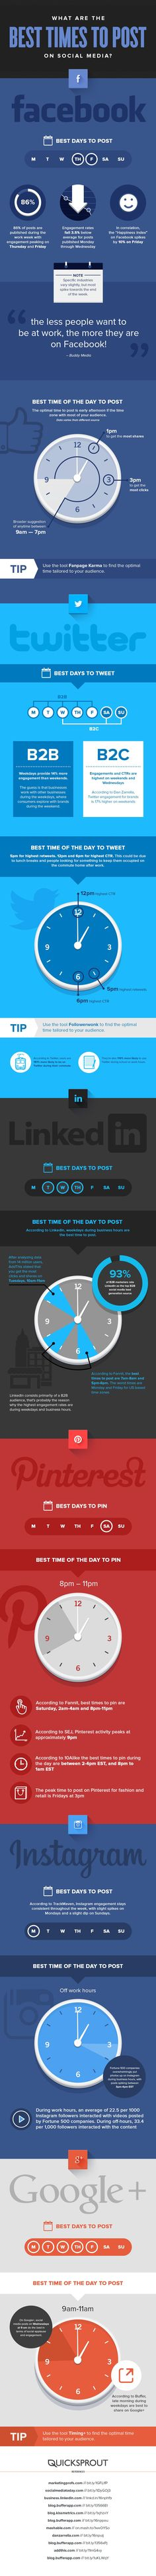 Post Smarter: The Best Times to Use #SocialMedia - #Infographic